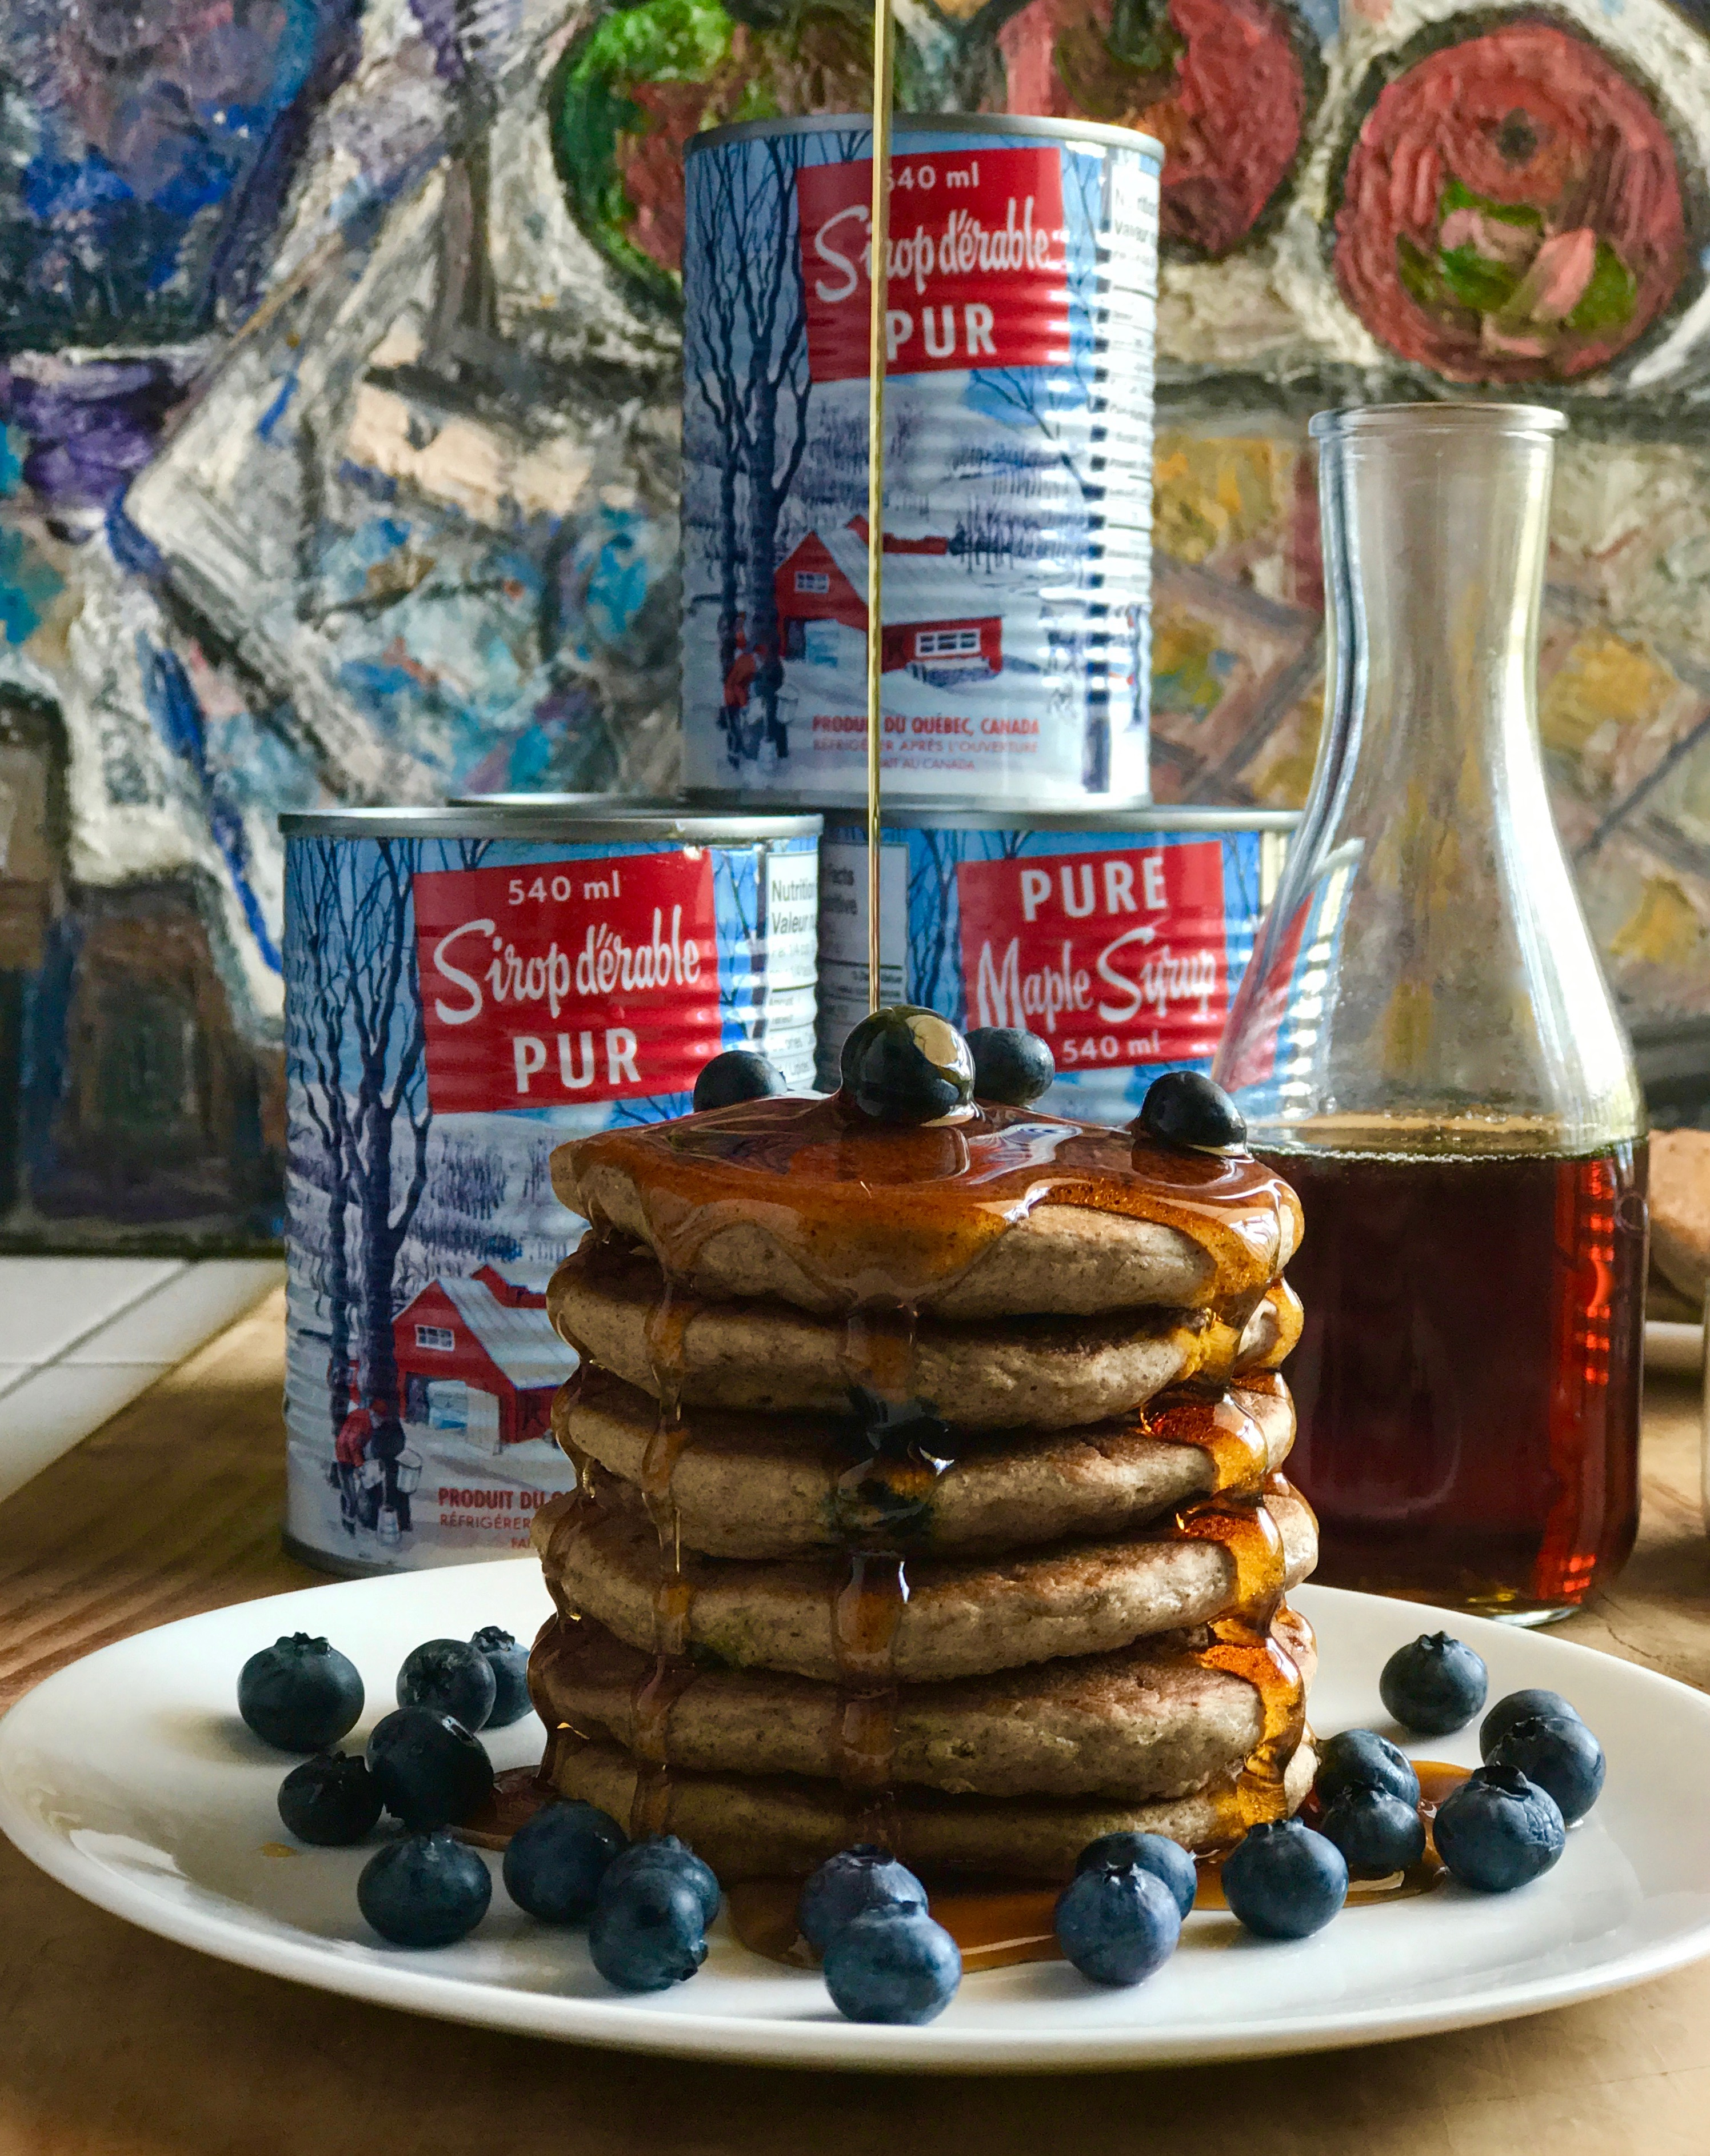 quebec maple syrup on plueberry pancakes